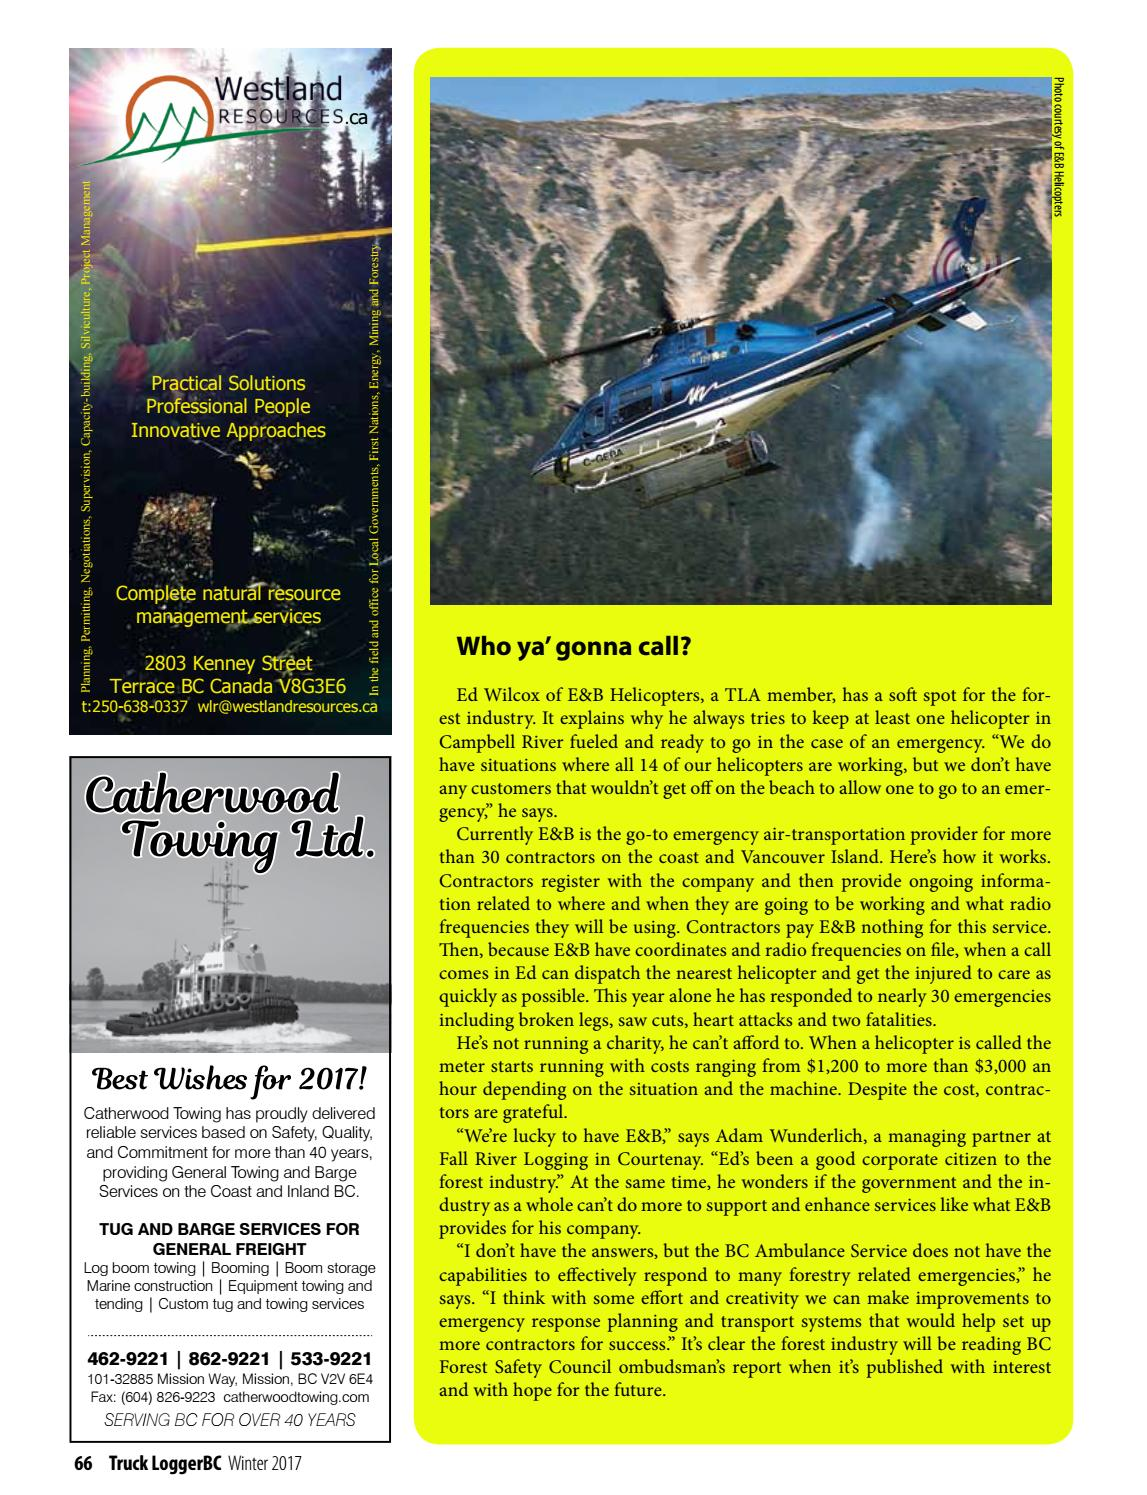 Truck LoggerBC, Winter 2017 - Volume 39, Number 4 by Truck Loggers